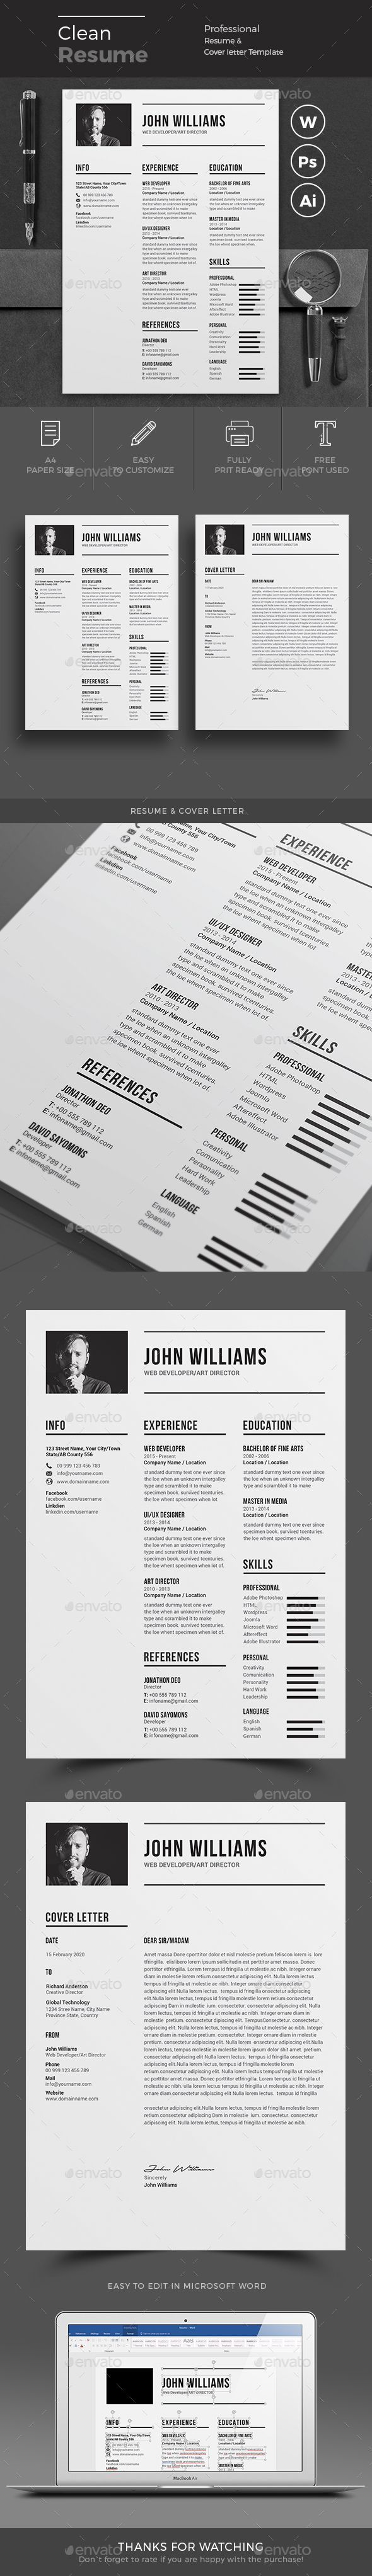 cashier resume format%0A Resume Template  Resume Builder  CV Template  Free Cover Letter  MS  Word on